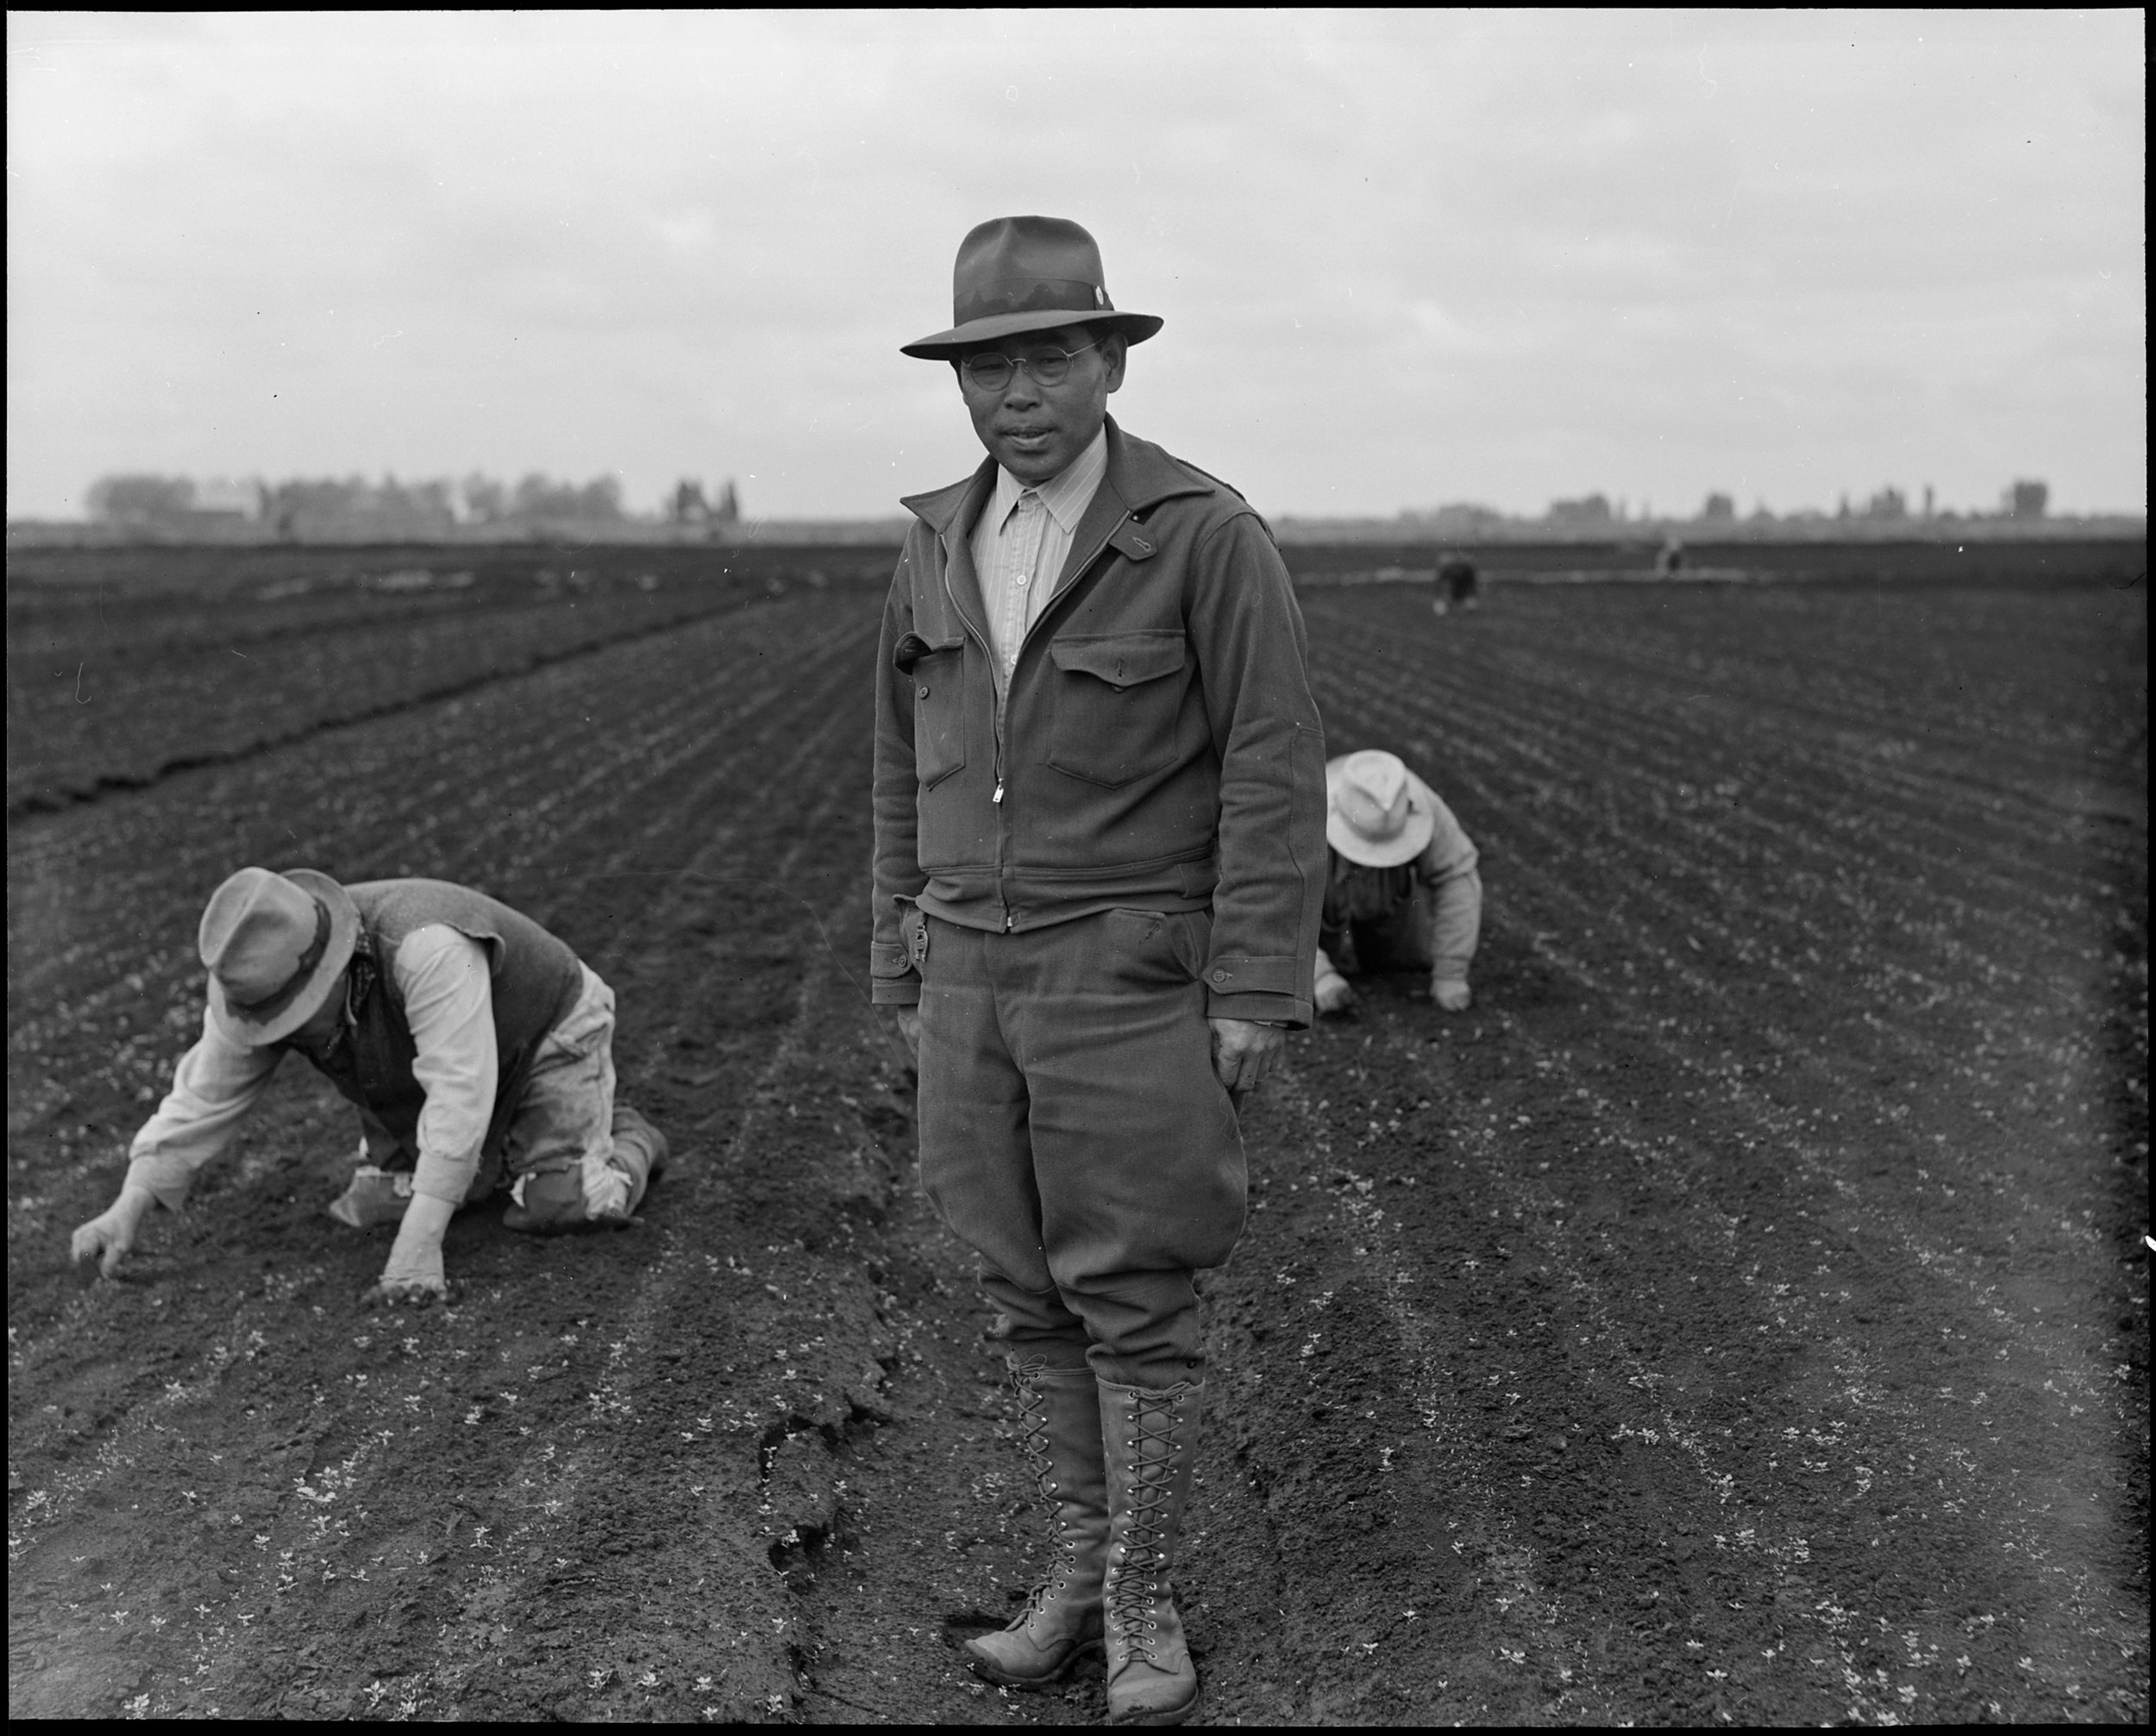 Stockton, California. Weeding celery field in the Delta region, prior to evacuation. Henry Futamachi, ranch manager, in foreground. Farmers and other evacuees of Japanese ancestry will be given opportunities to follow their callings in War Relocation Authority centers where they will spend the duration.